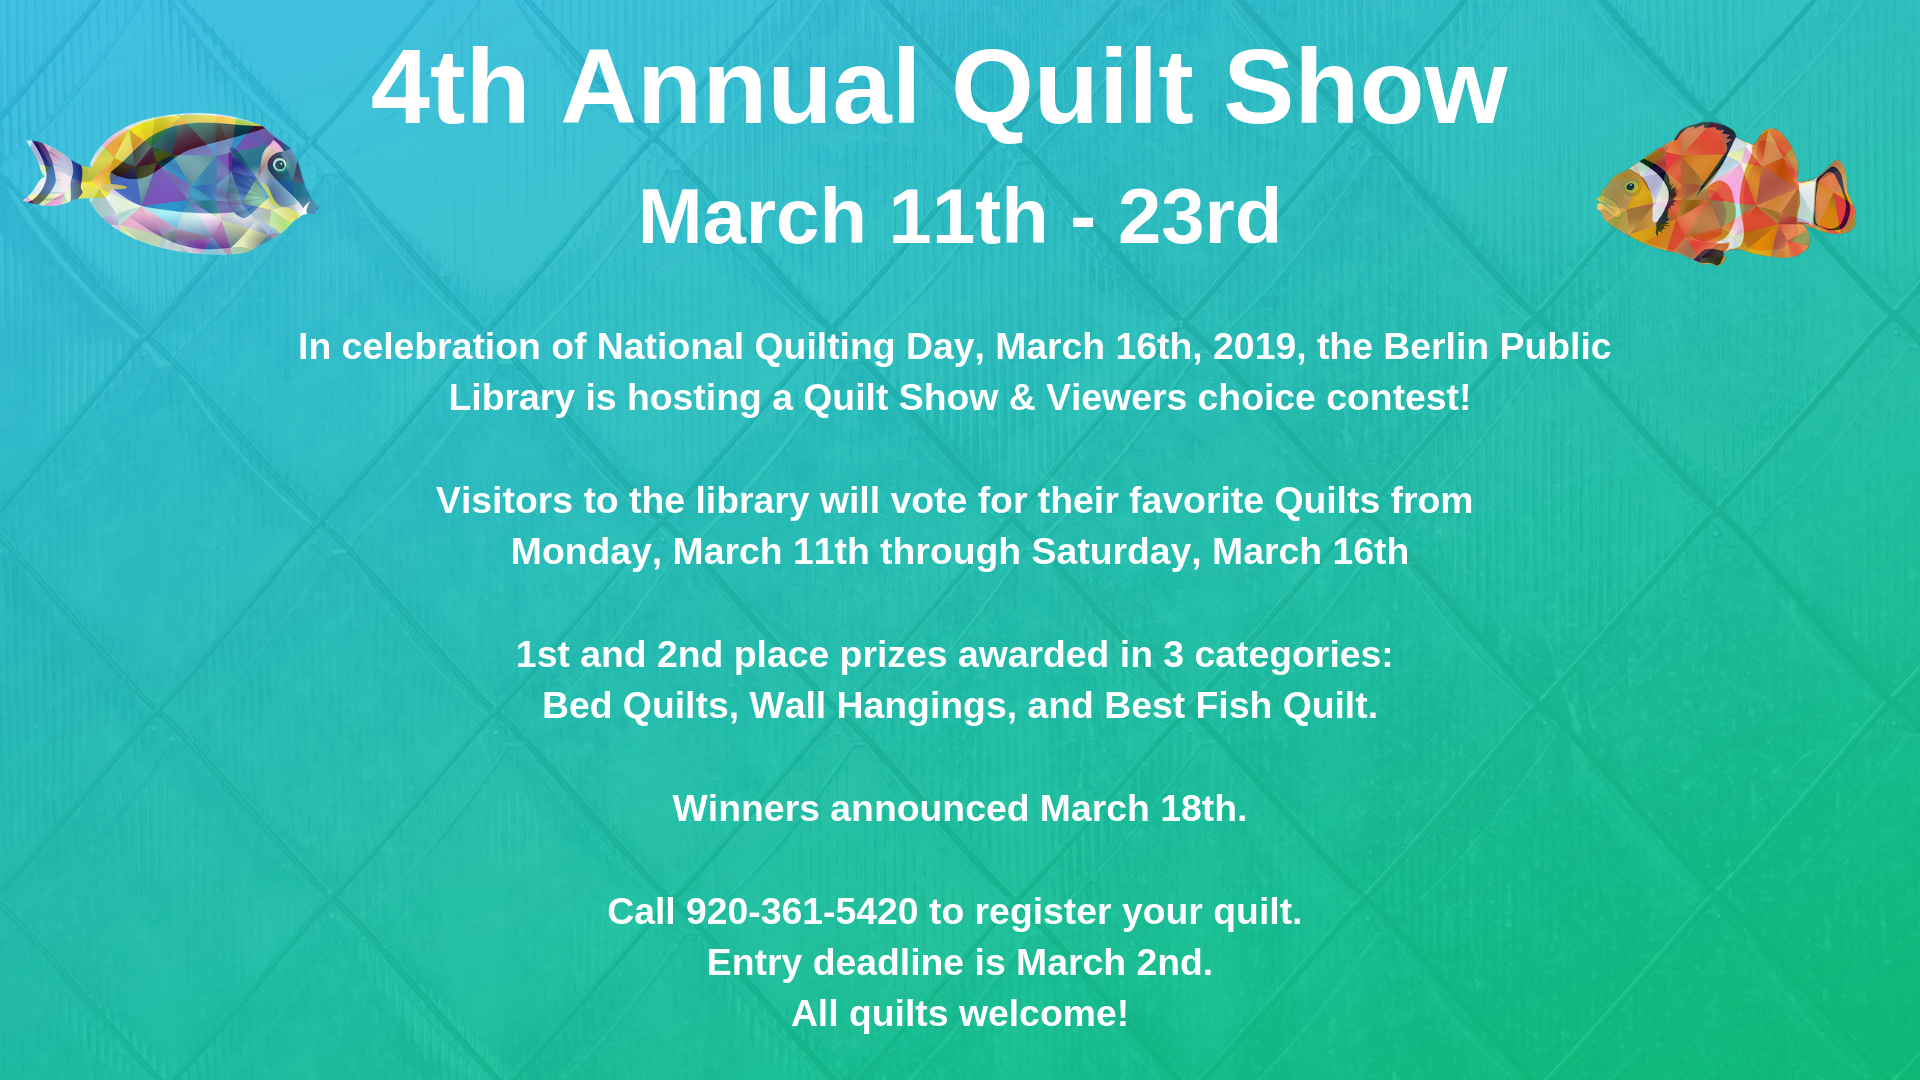 4th Annual Quilt Show, March 11-23. Quilt show and viewers' choice contest. 1st and 2nd place prizes awarded for best bed quilt, best wall hanging, and best fish quilt. Entry deadline March 2nd, winners announced March 18.